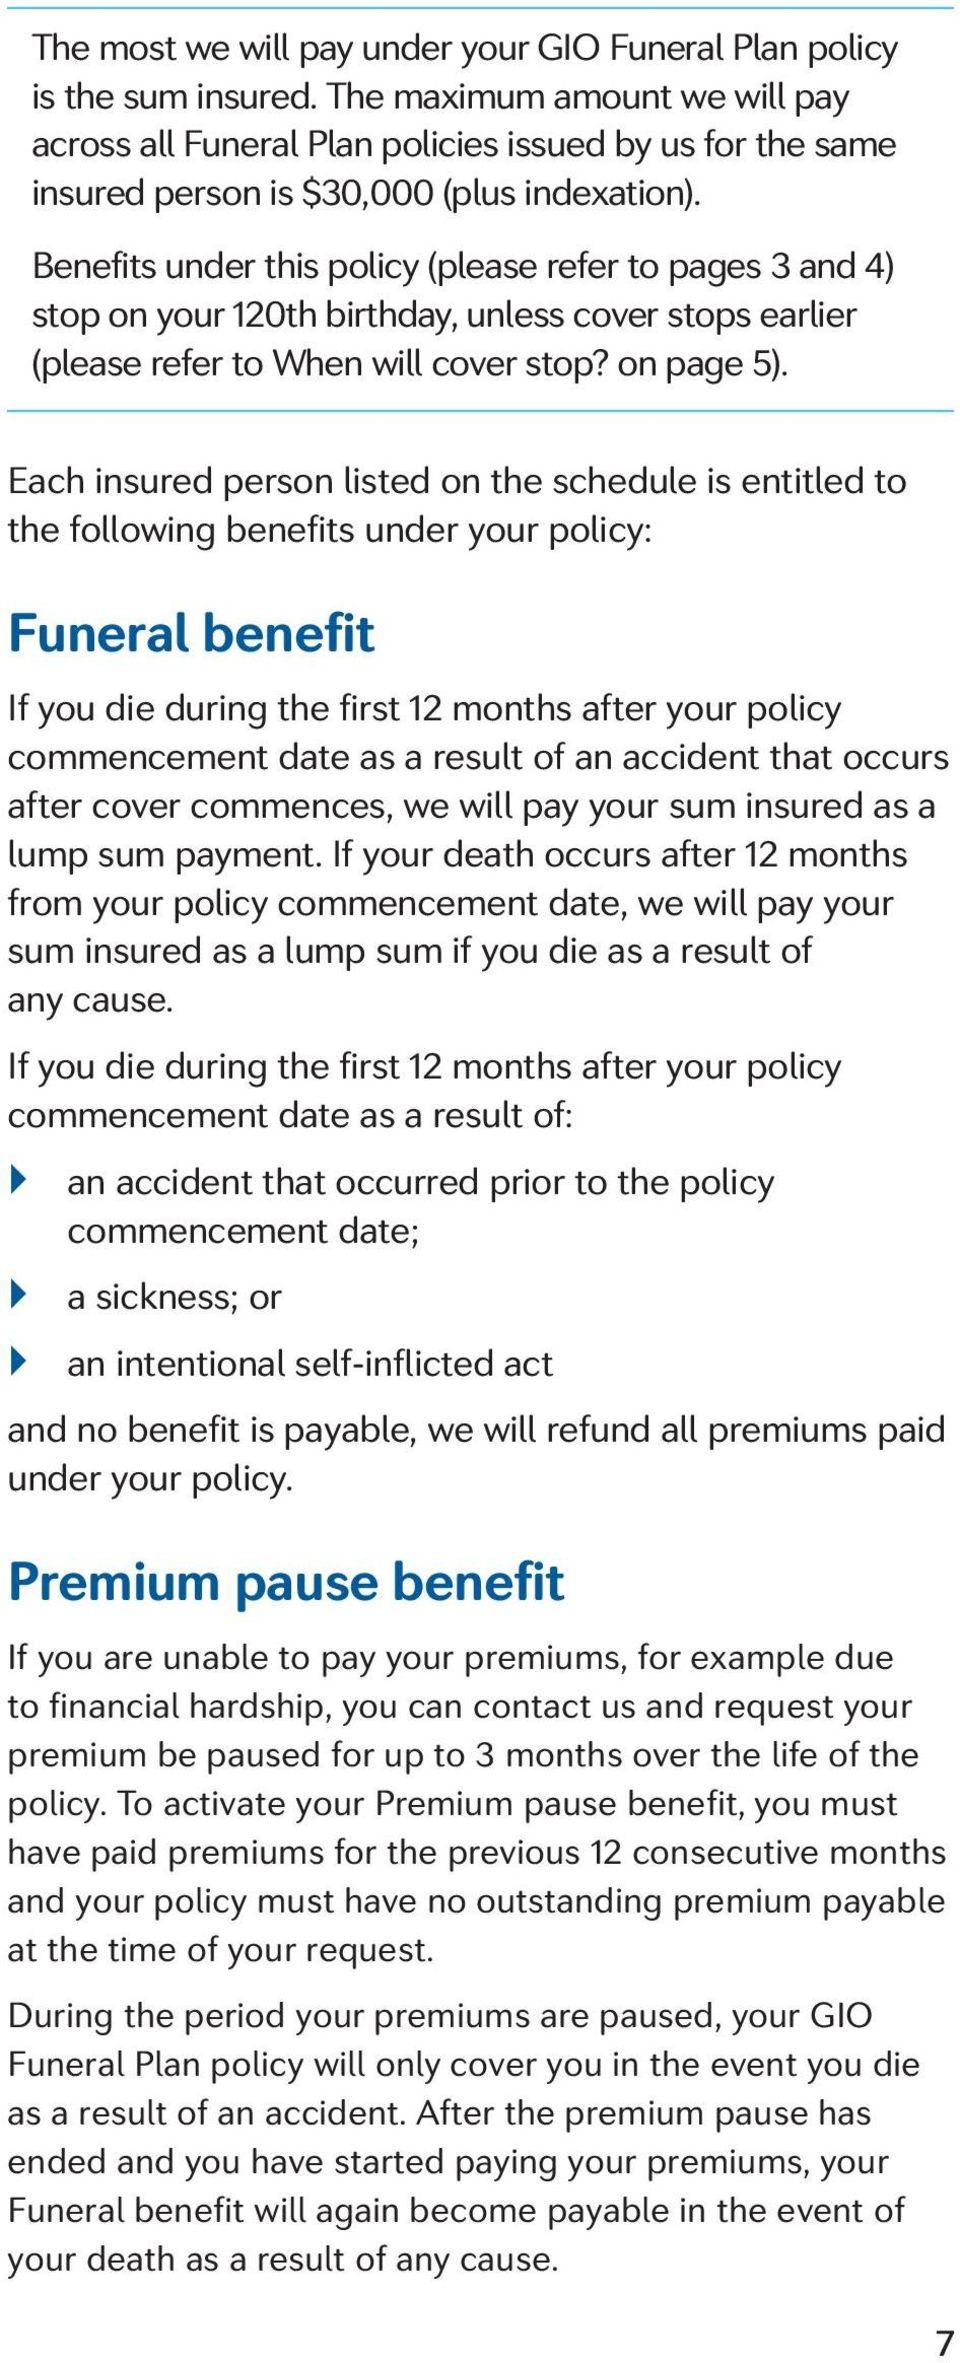 Benefits under this policy (please refer to pages 3 and 4) stop on your 120th birthday, unless cover stops earlier (please refer to When will cover stop? on page 5).